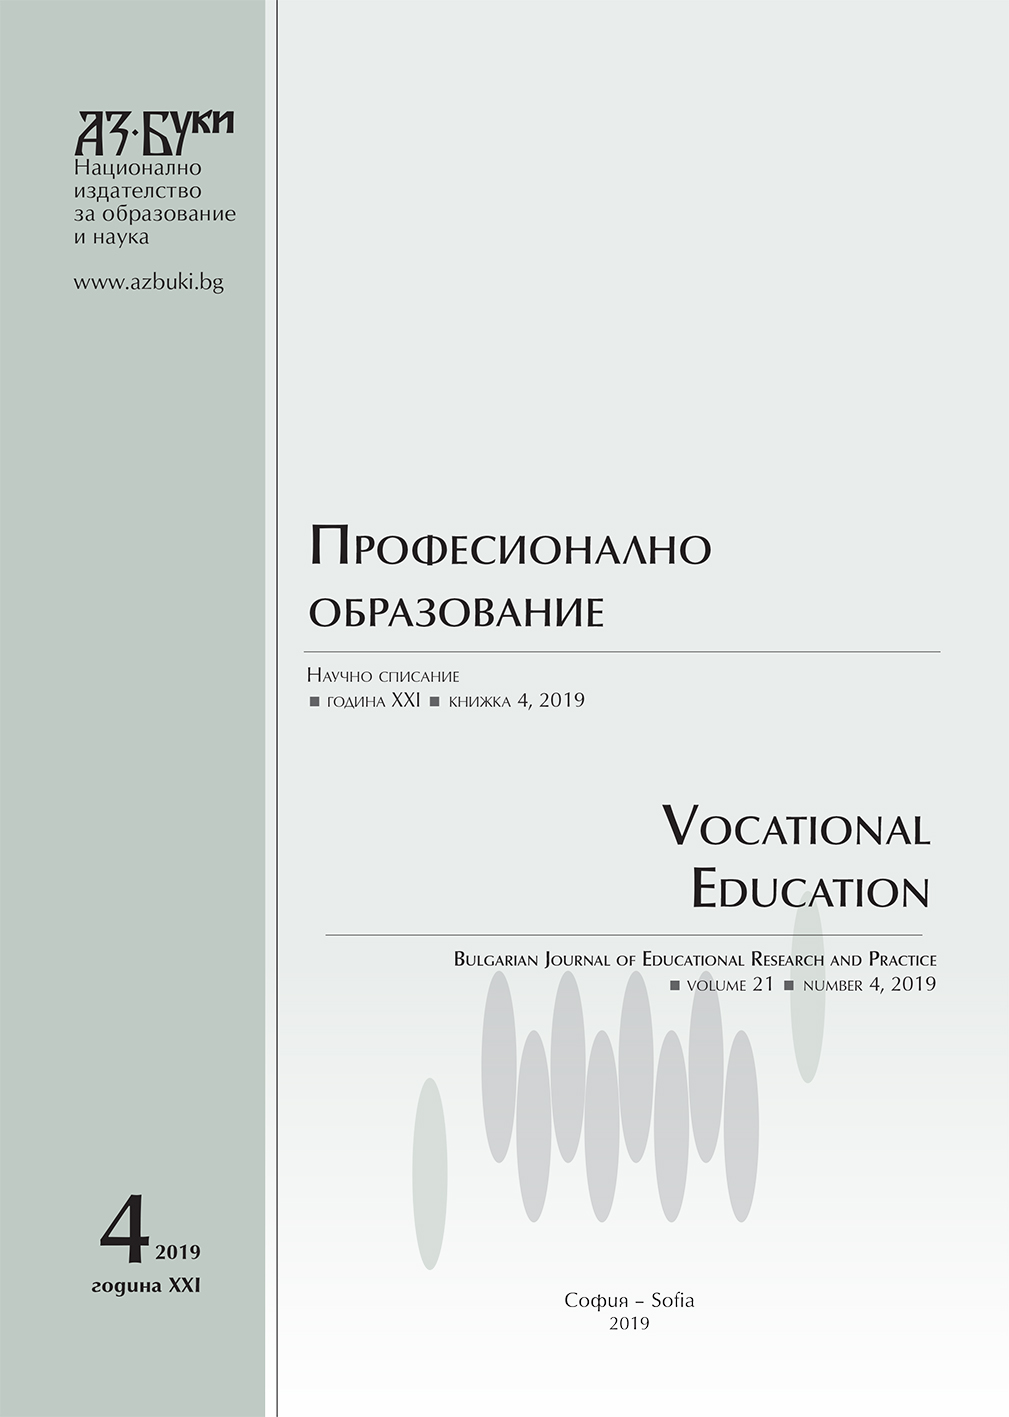 Development of Out-of-school Education in Children's Organizations in Bulgaria from 1944 to 1990 Cover Image